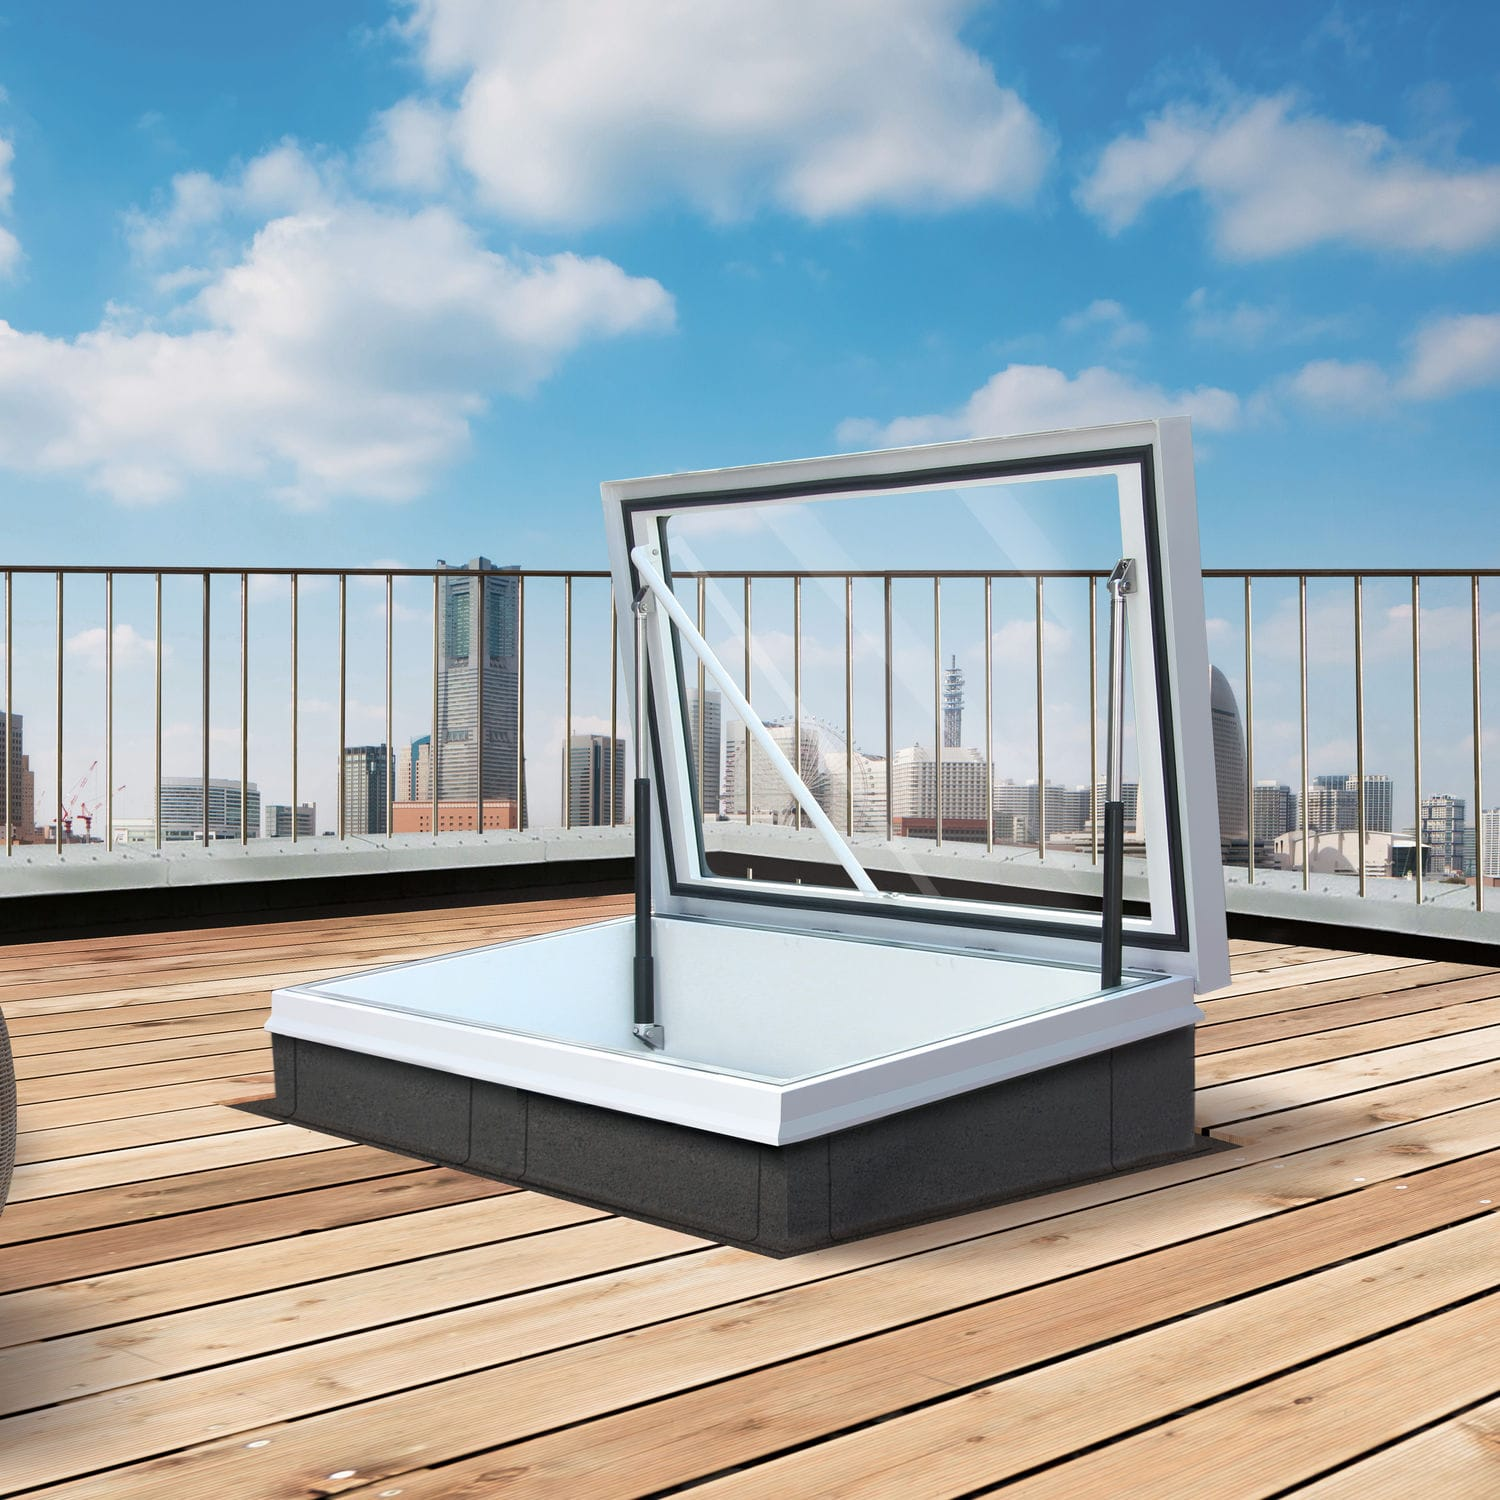 Home roof access glazed roof hatch glazed roof hatch - Roof Hatch Rectangular With Translucent Glass Thermal Break Rhtg1015